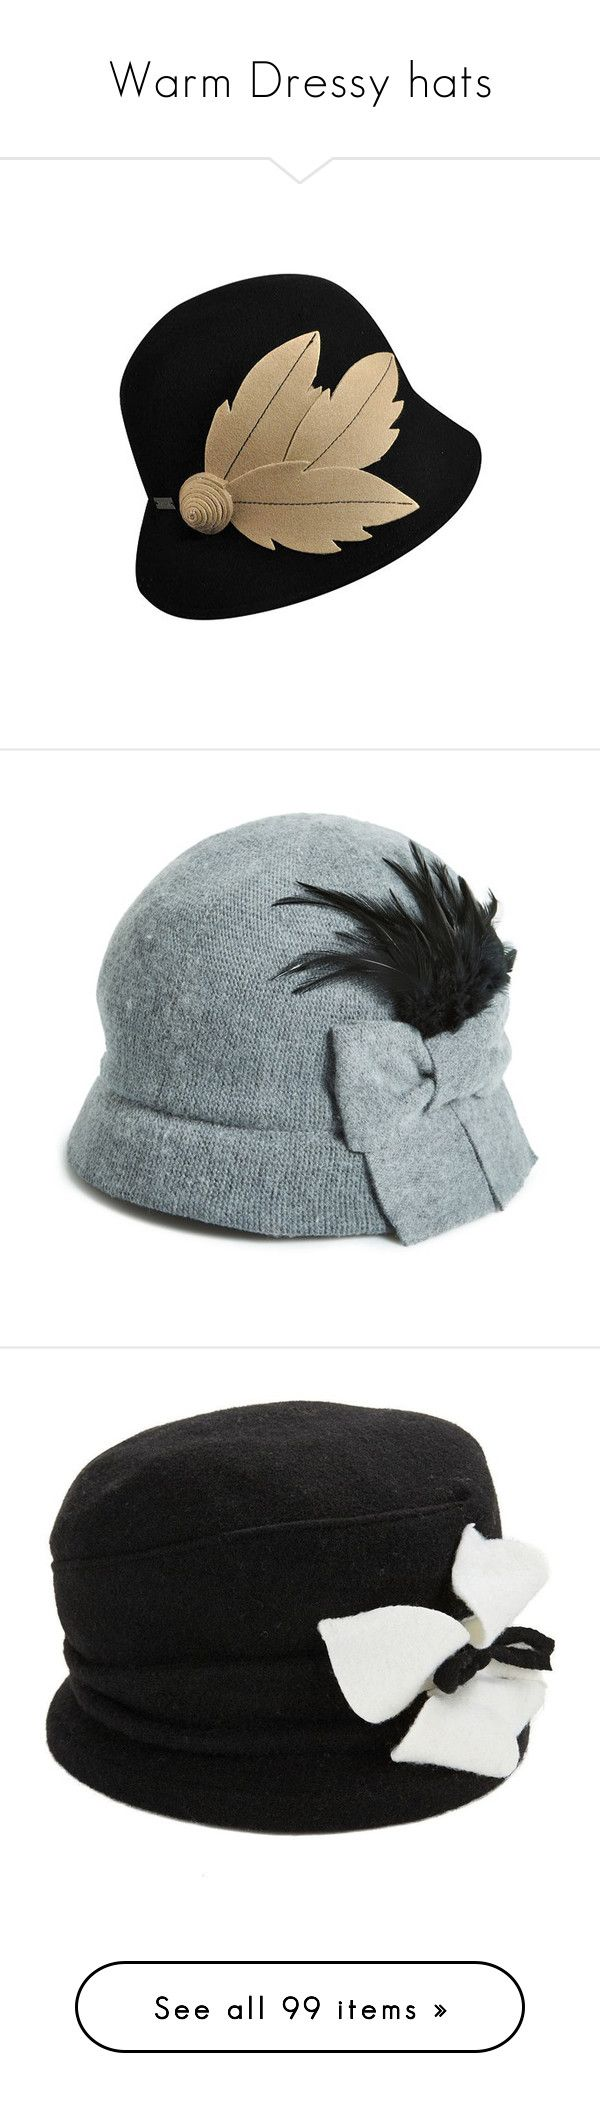 """""""Warm Dressy hats"""" by judymjohnson ❤ liked on Polyvore featuring accessories, hats, black, fisherman hat, black bucket hat, bucket hat, betmar, betmar hats, grey and grey hat"""